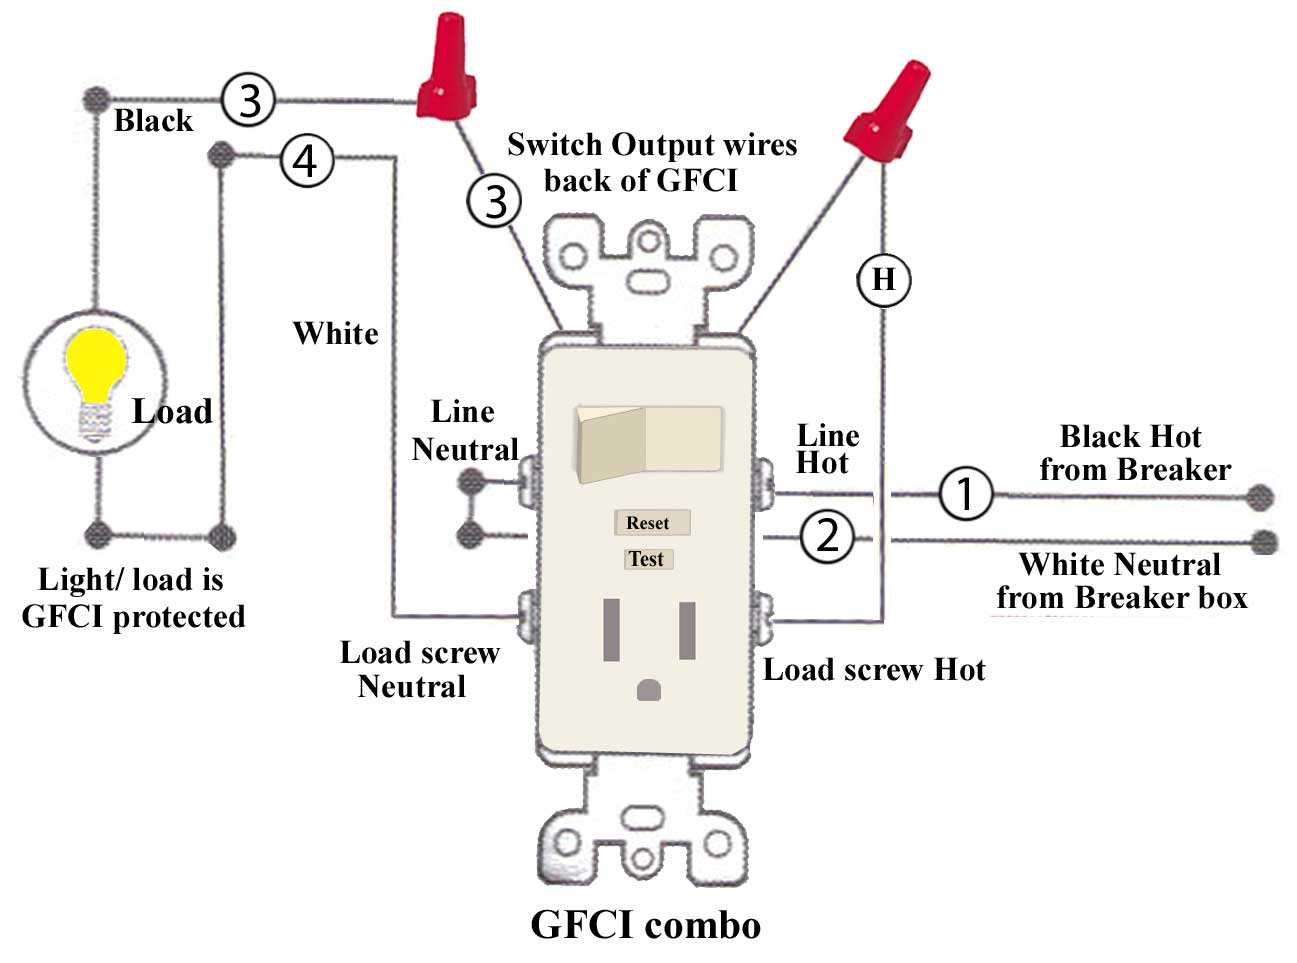 Gfci Switch Schematic Combo Wiring | Wiring Diagram - Gfci Outlet With Switch Wiring Diagram